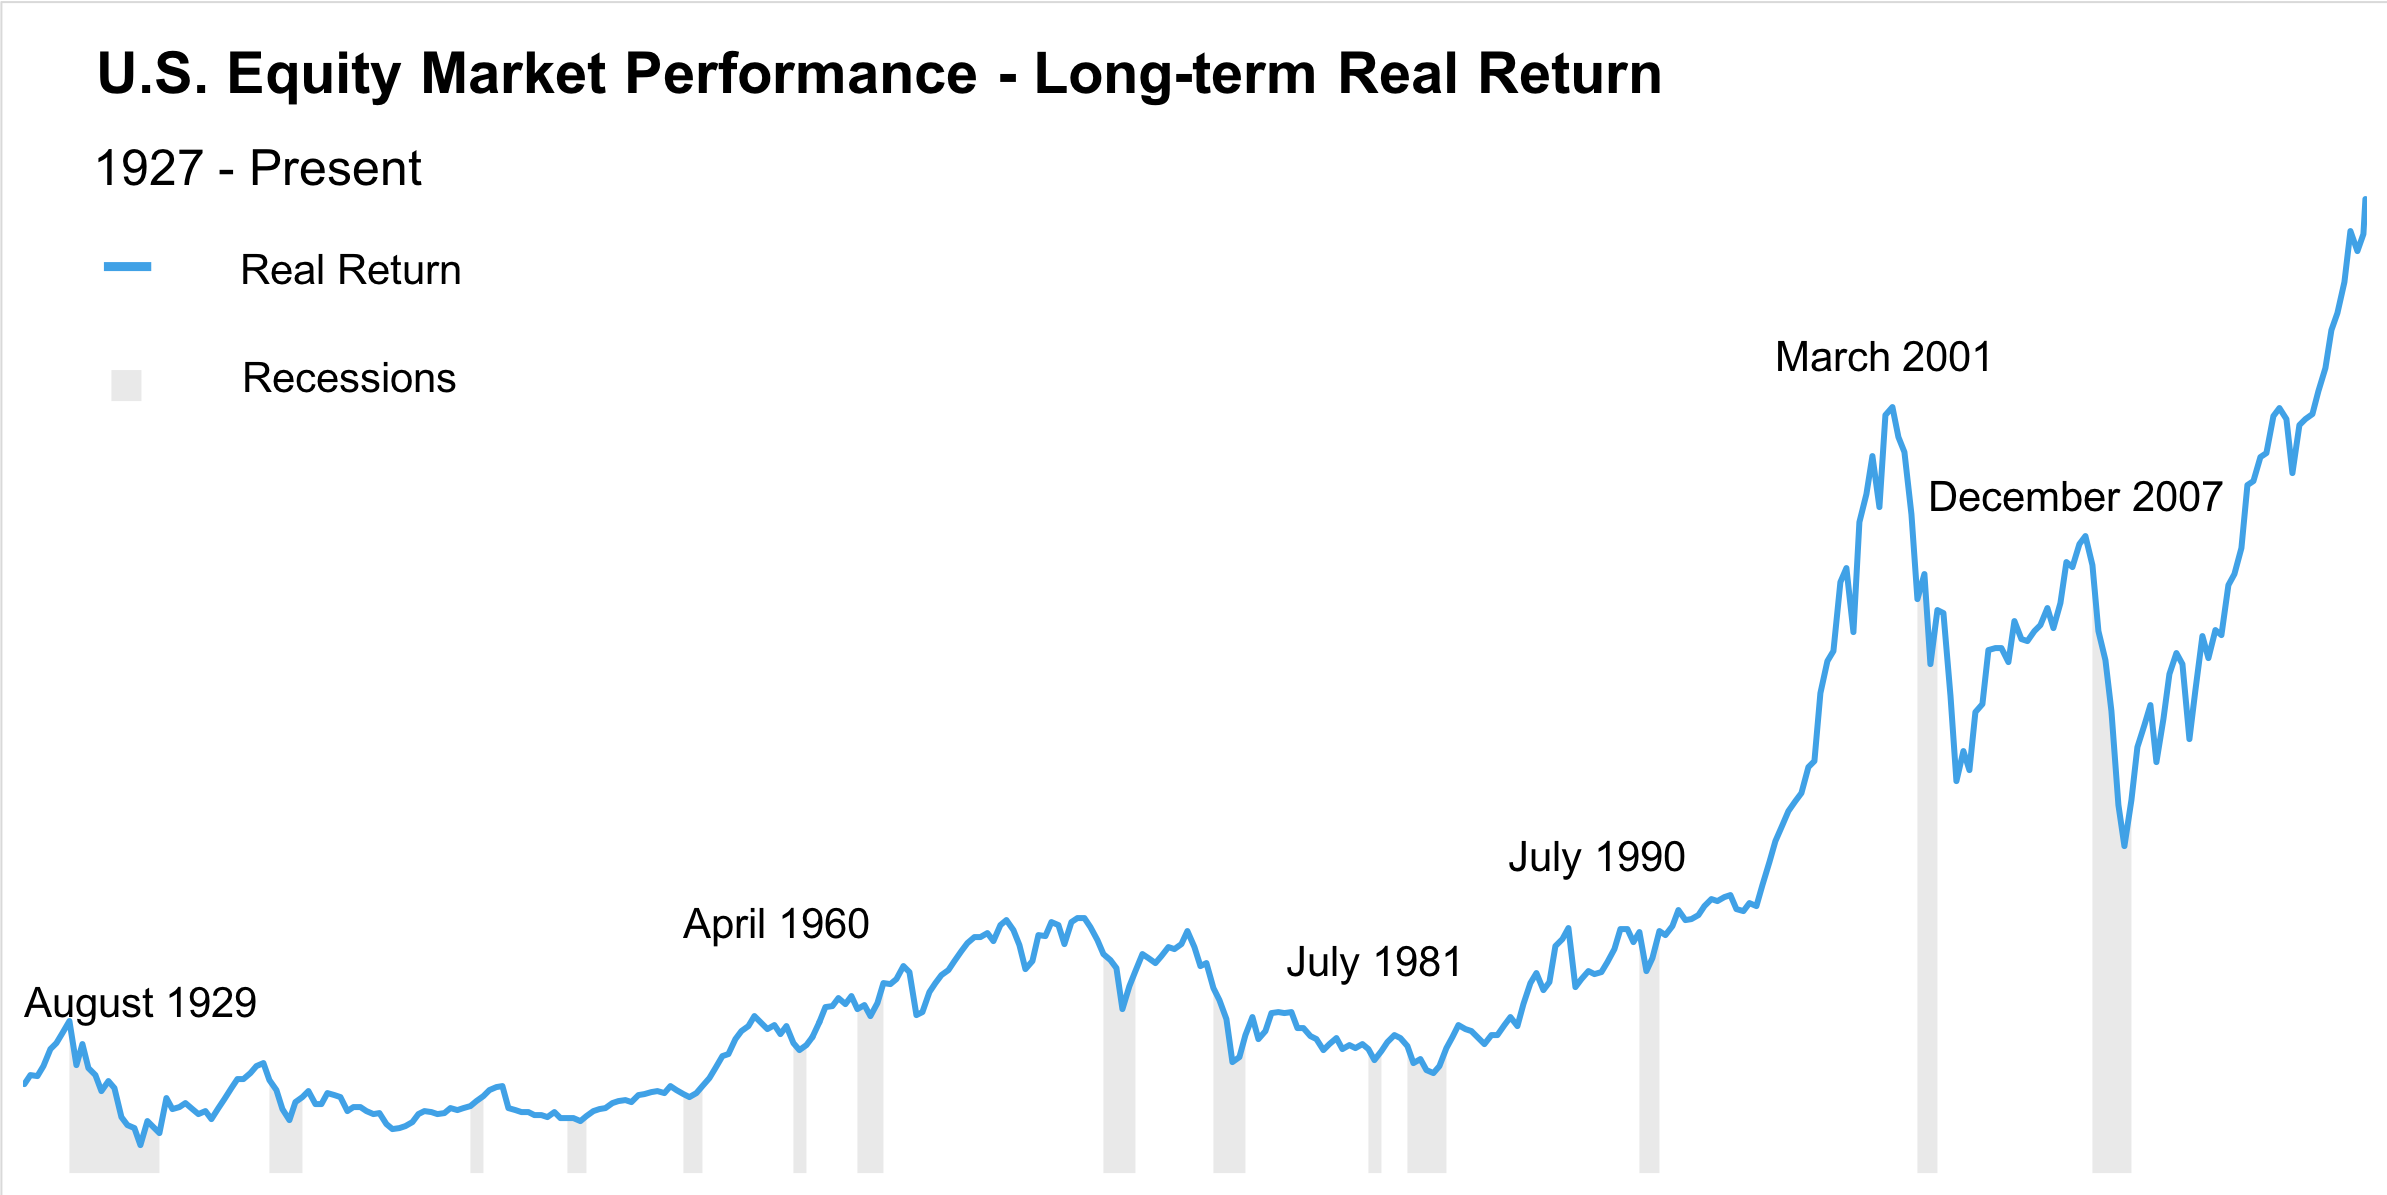 Source: Bloomberg and FRED. S&P 500 quarterly price data from 1927 to 2018. Return adjusted with CPI. Market price data excludes dividend reinvestment.